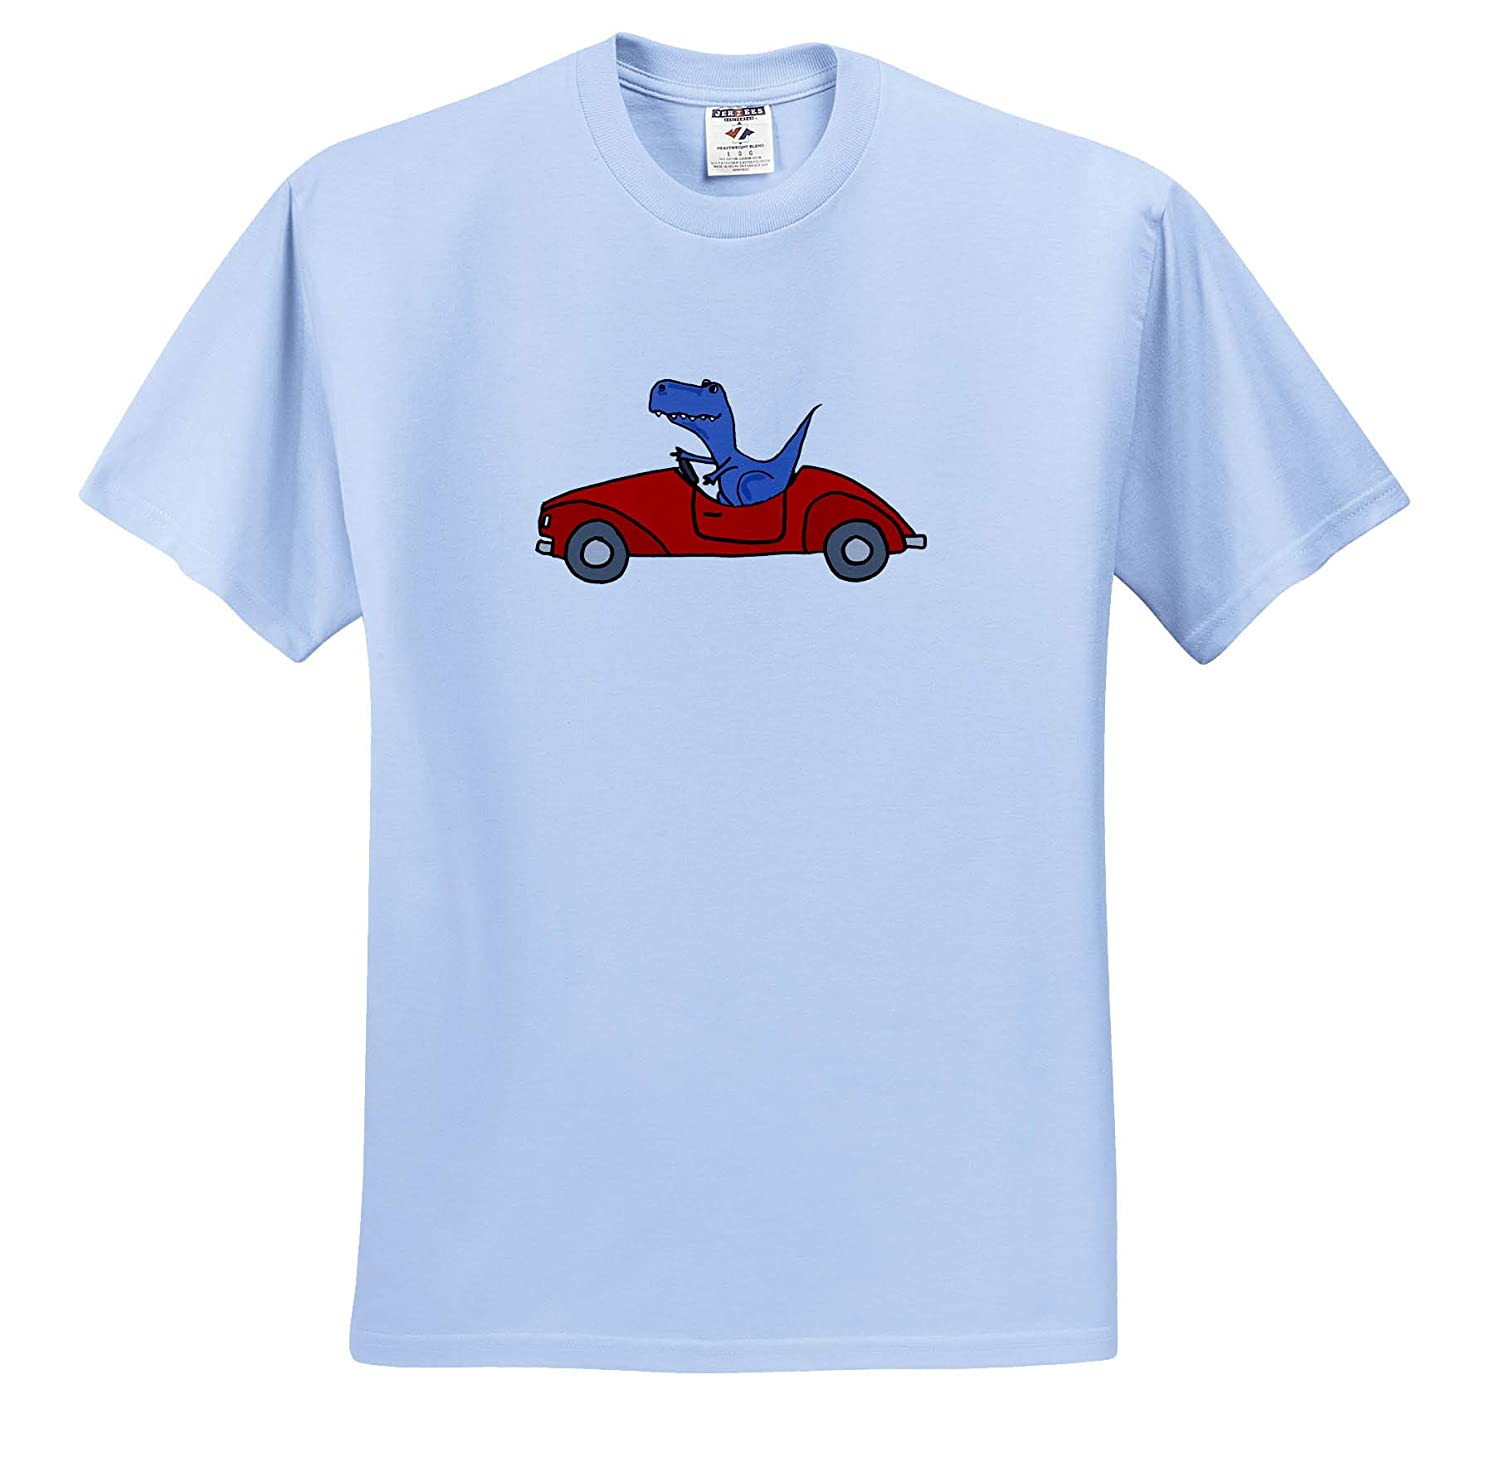 Adult T-Shirt XL Funny Funny Cute T-rex Dinosaur Driving Red Convertible Car ts/_317709 3dRose All Smiles Art